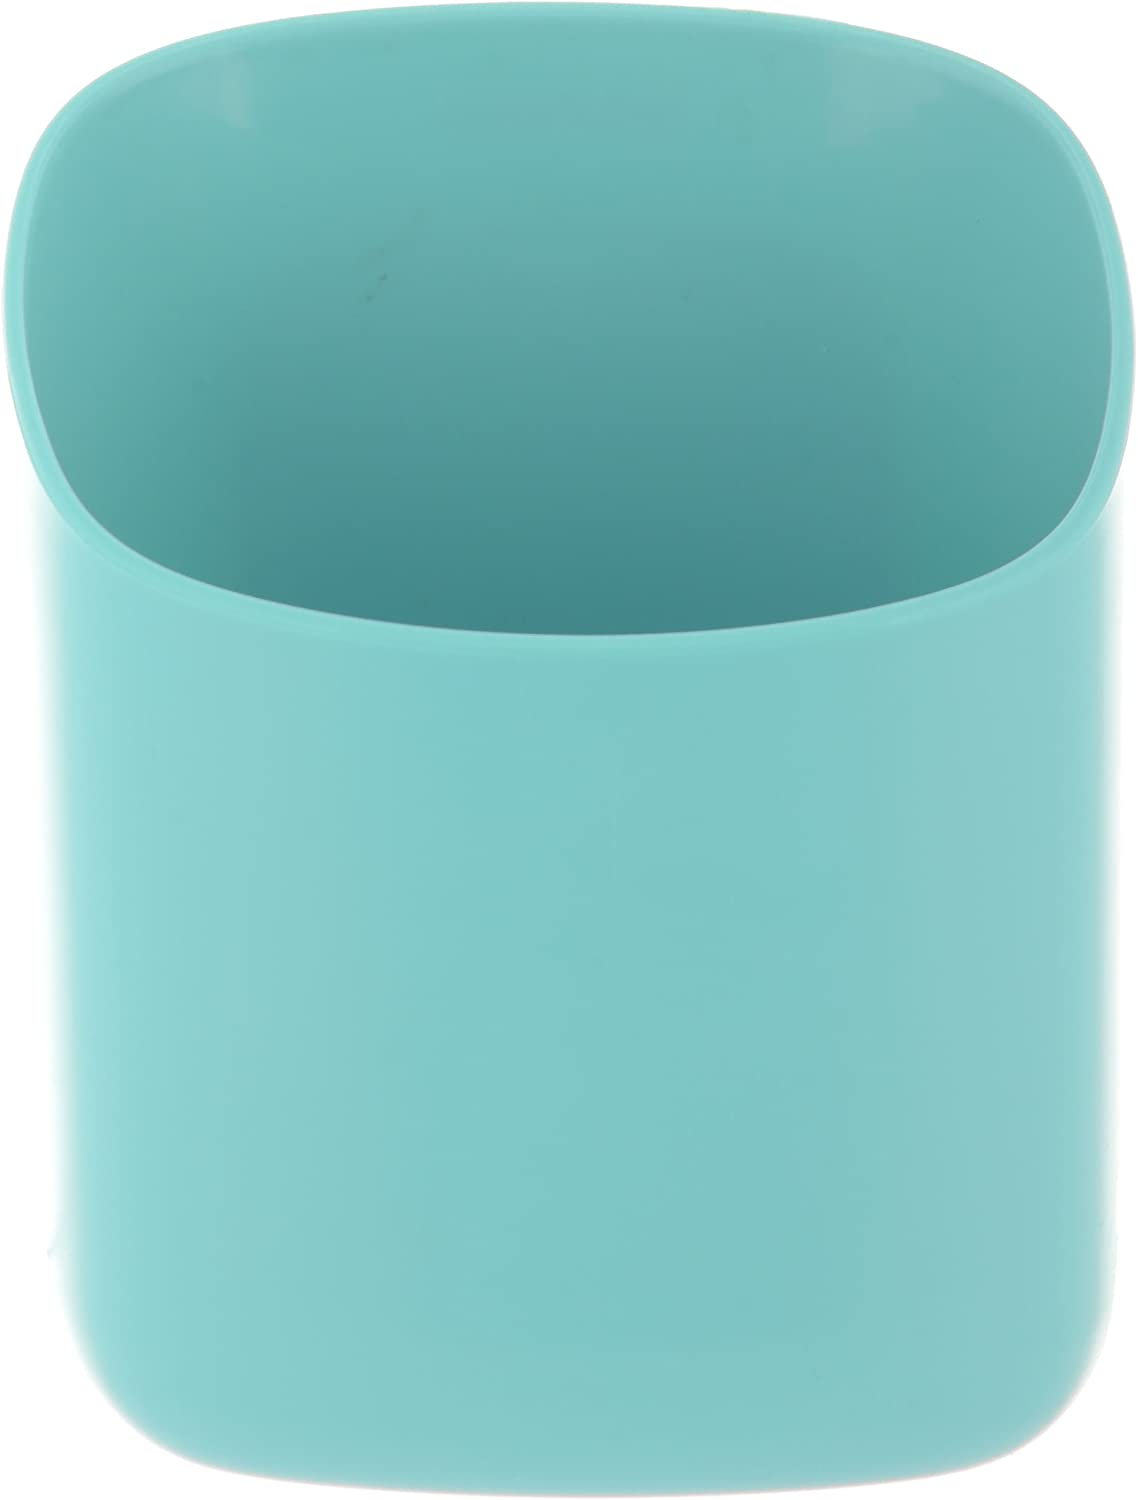 35% OFF OFFicial site Honey-Can-Do P-11-BITS-11 Teal Storage